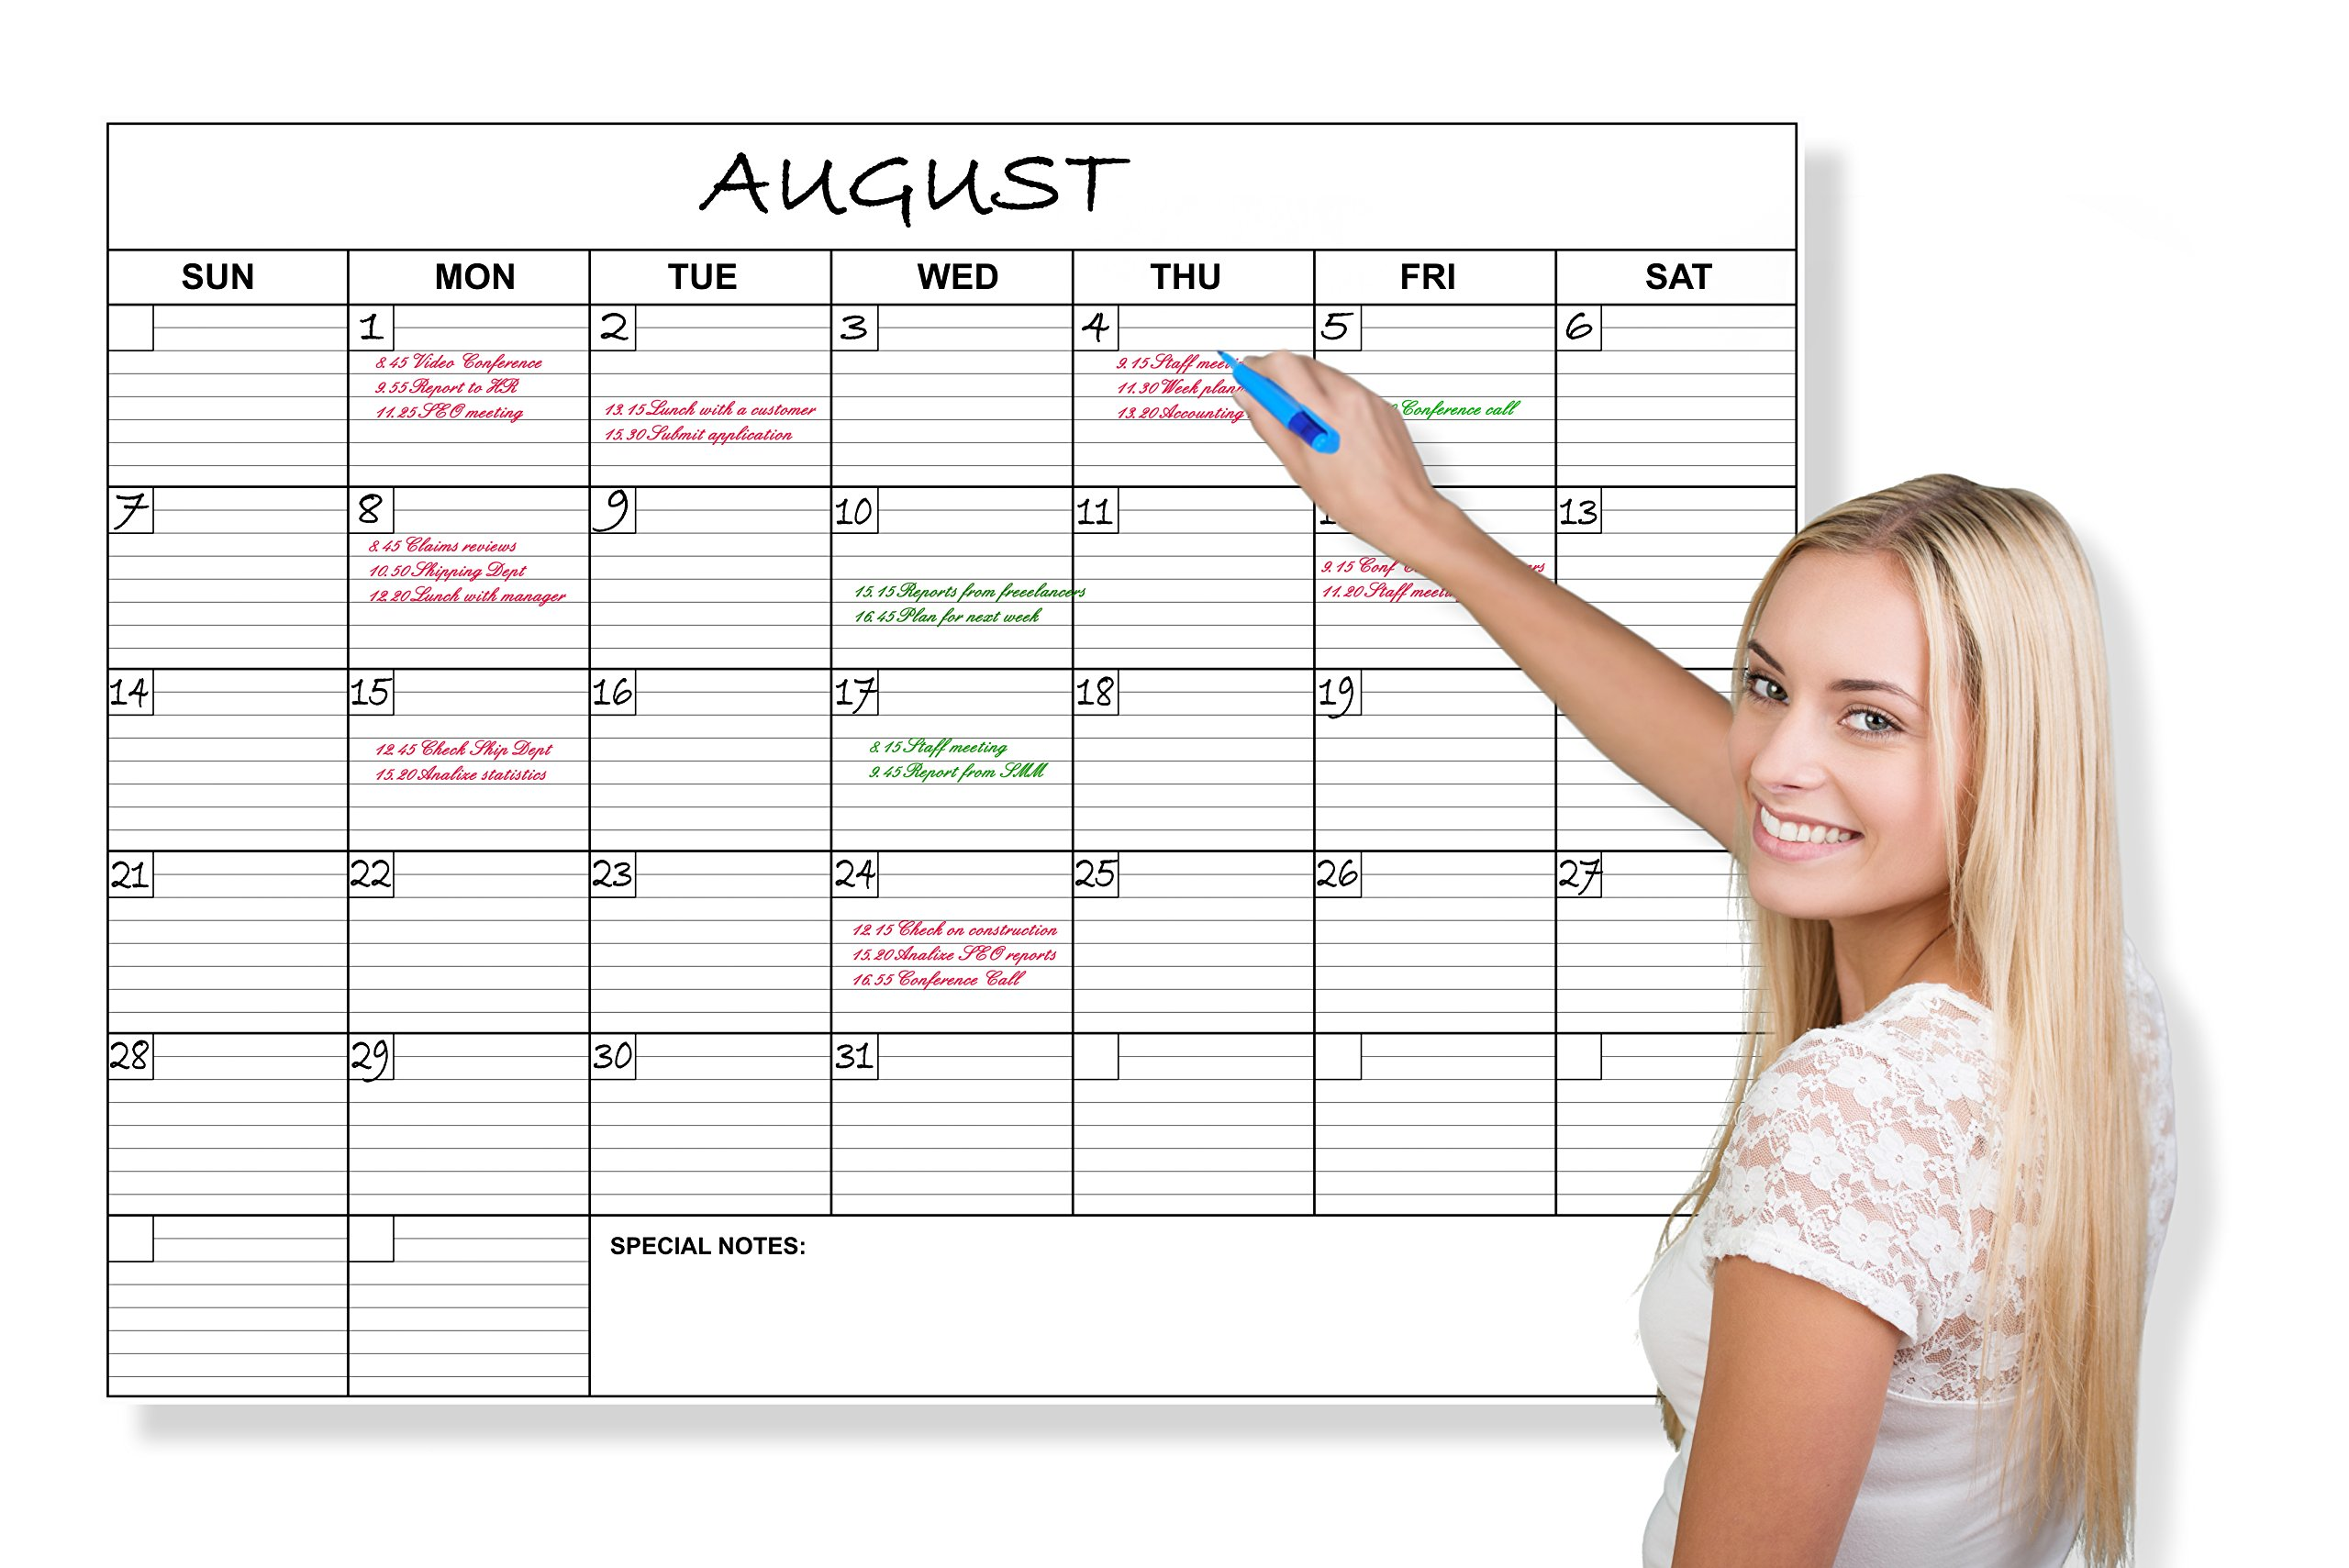 Jumbo Wall Calendar Laminated 36 X 48in Blank Month Planner for Home Office School Dry Erase Erasable